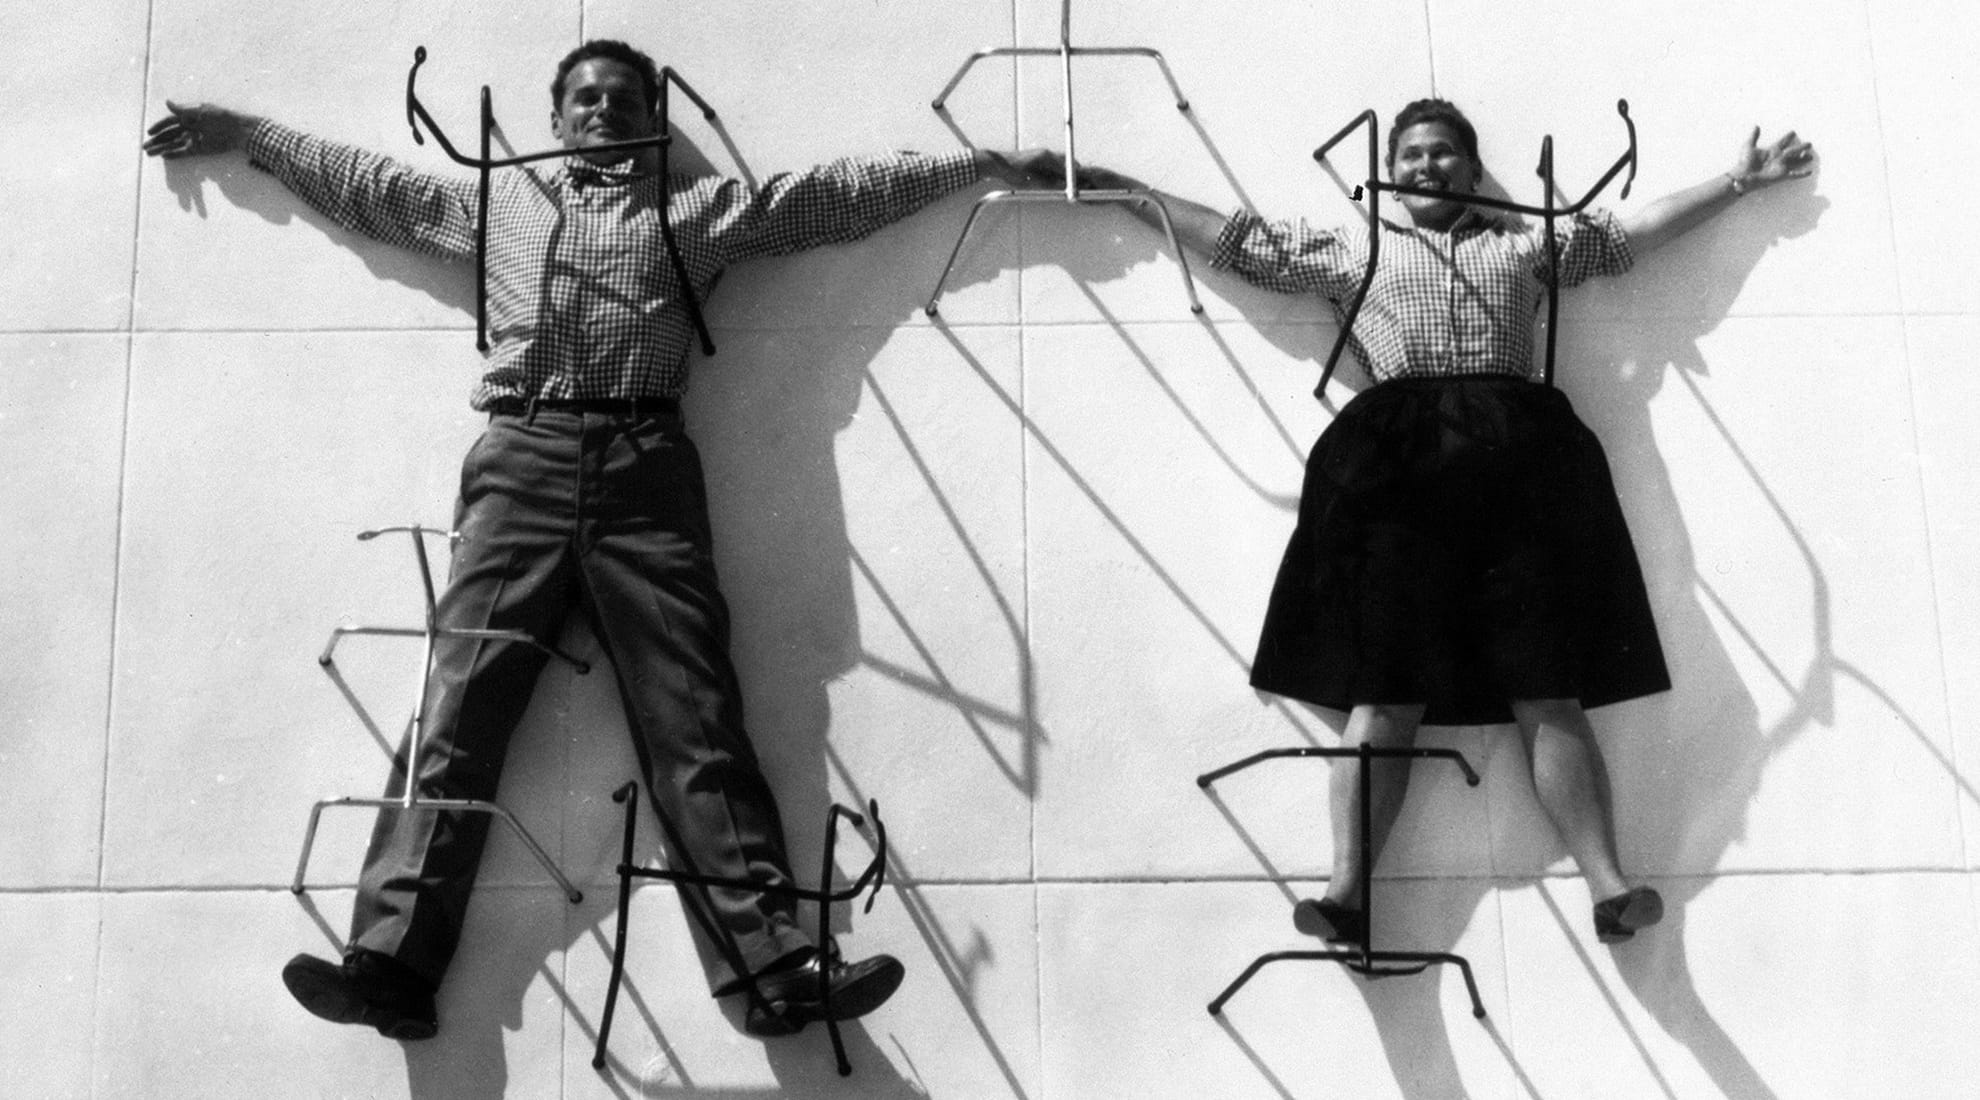 Charles & Ray Eames in 1947 under chair bases.